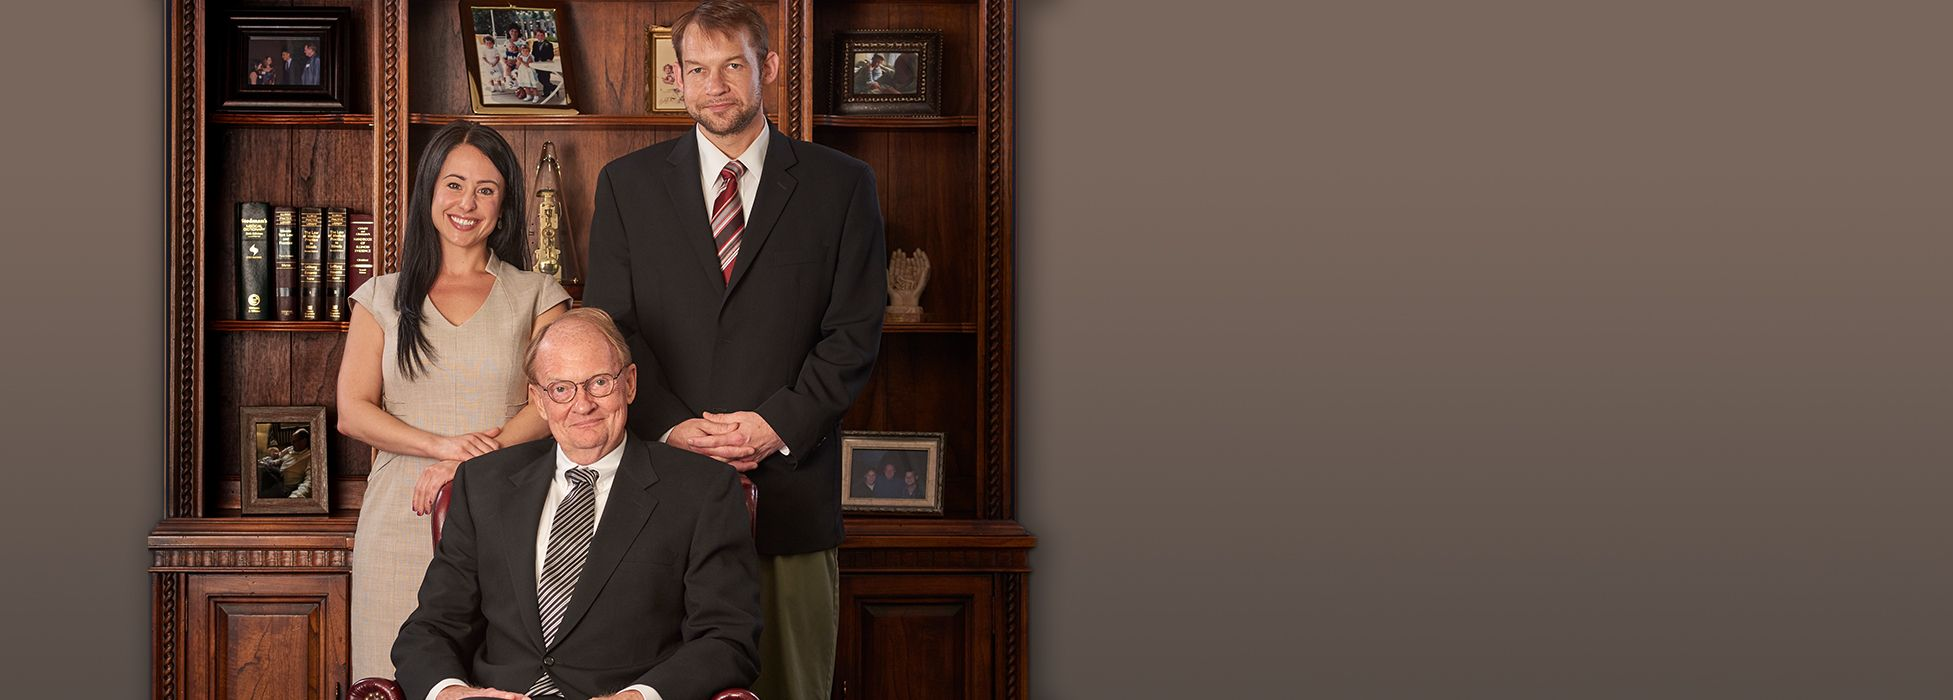 Medical Malpractice Lawyer, Keefe, Keefe and Unsell P.C.